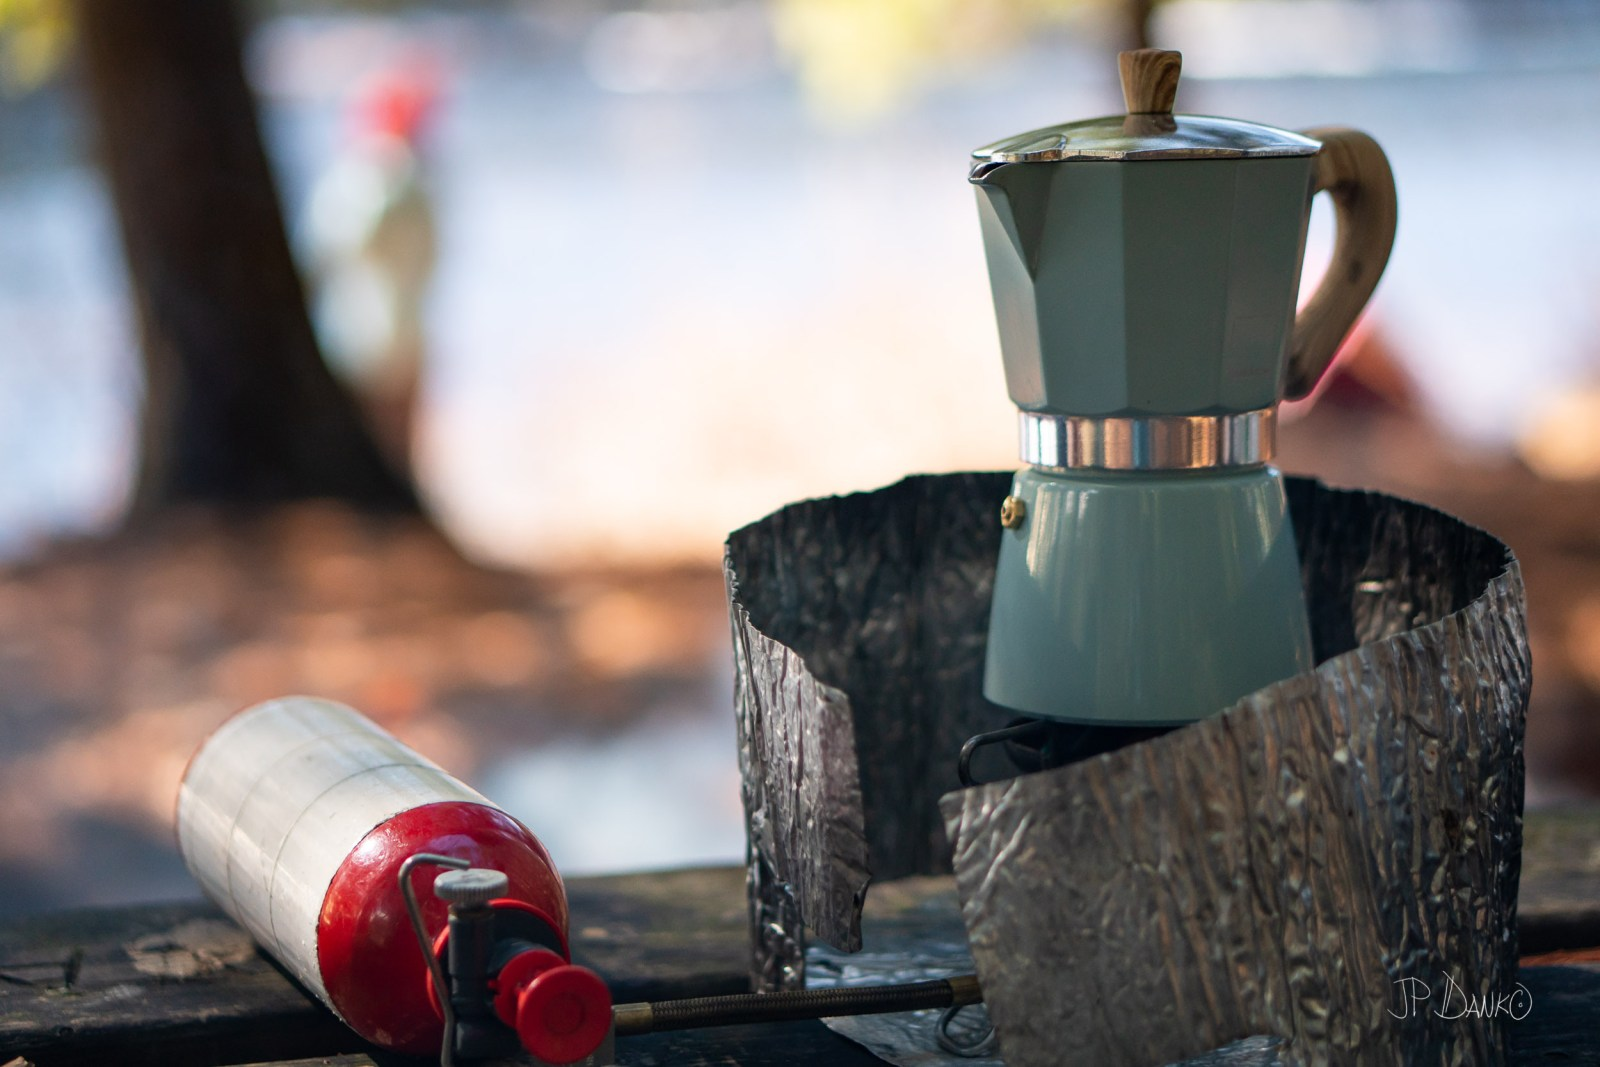 Morning Coffee Camp Stove Spring Canoe Trip Backcountry Wilderne